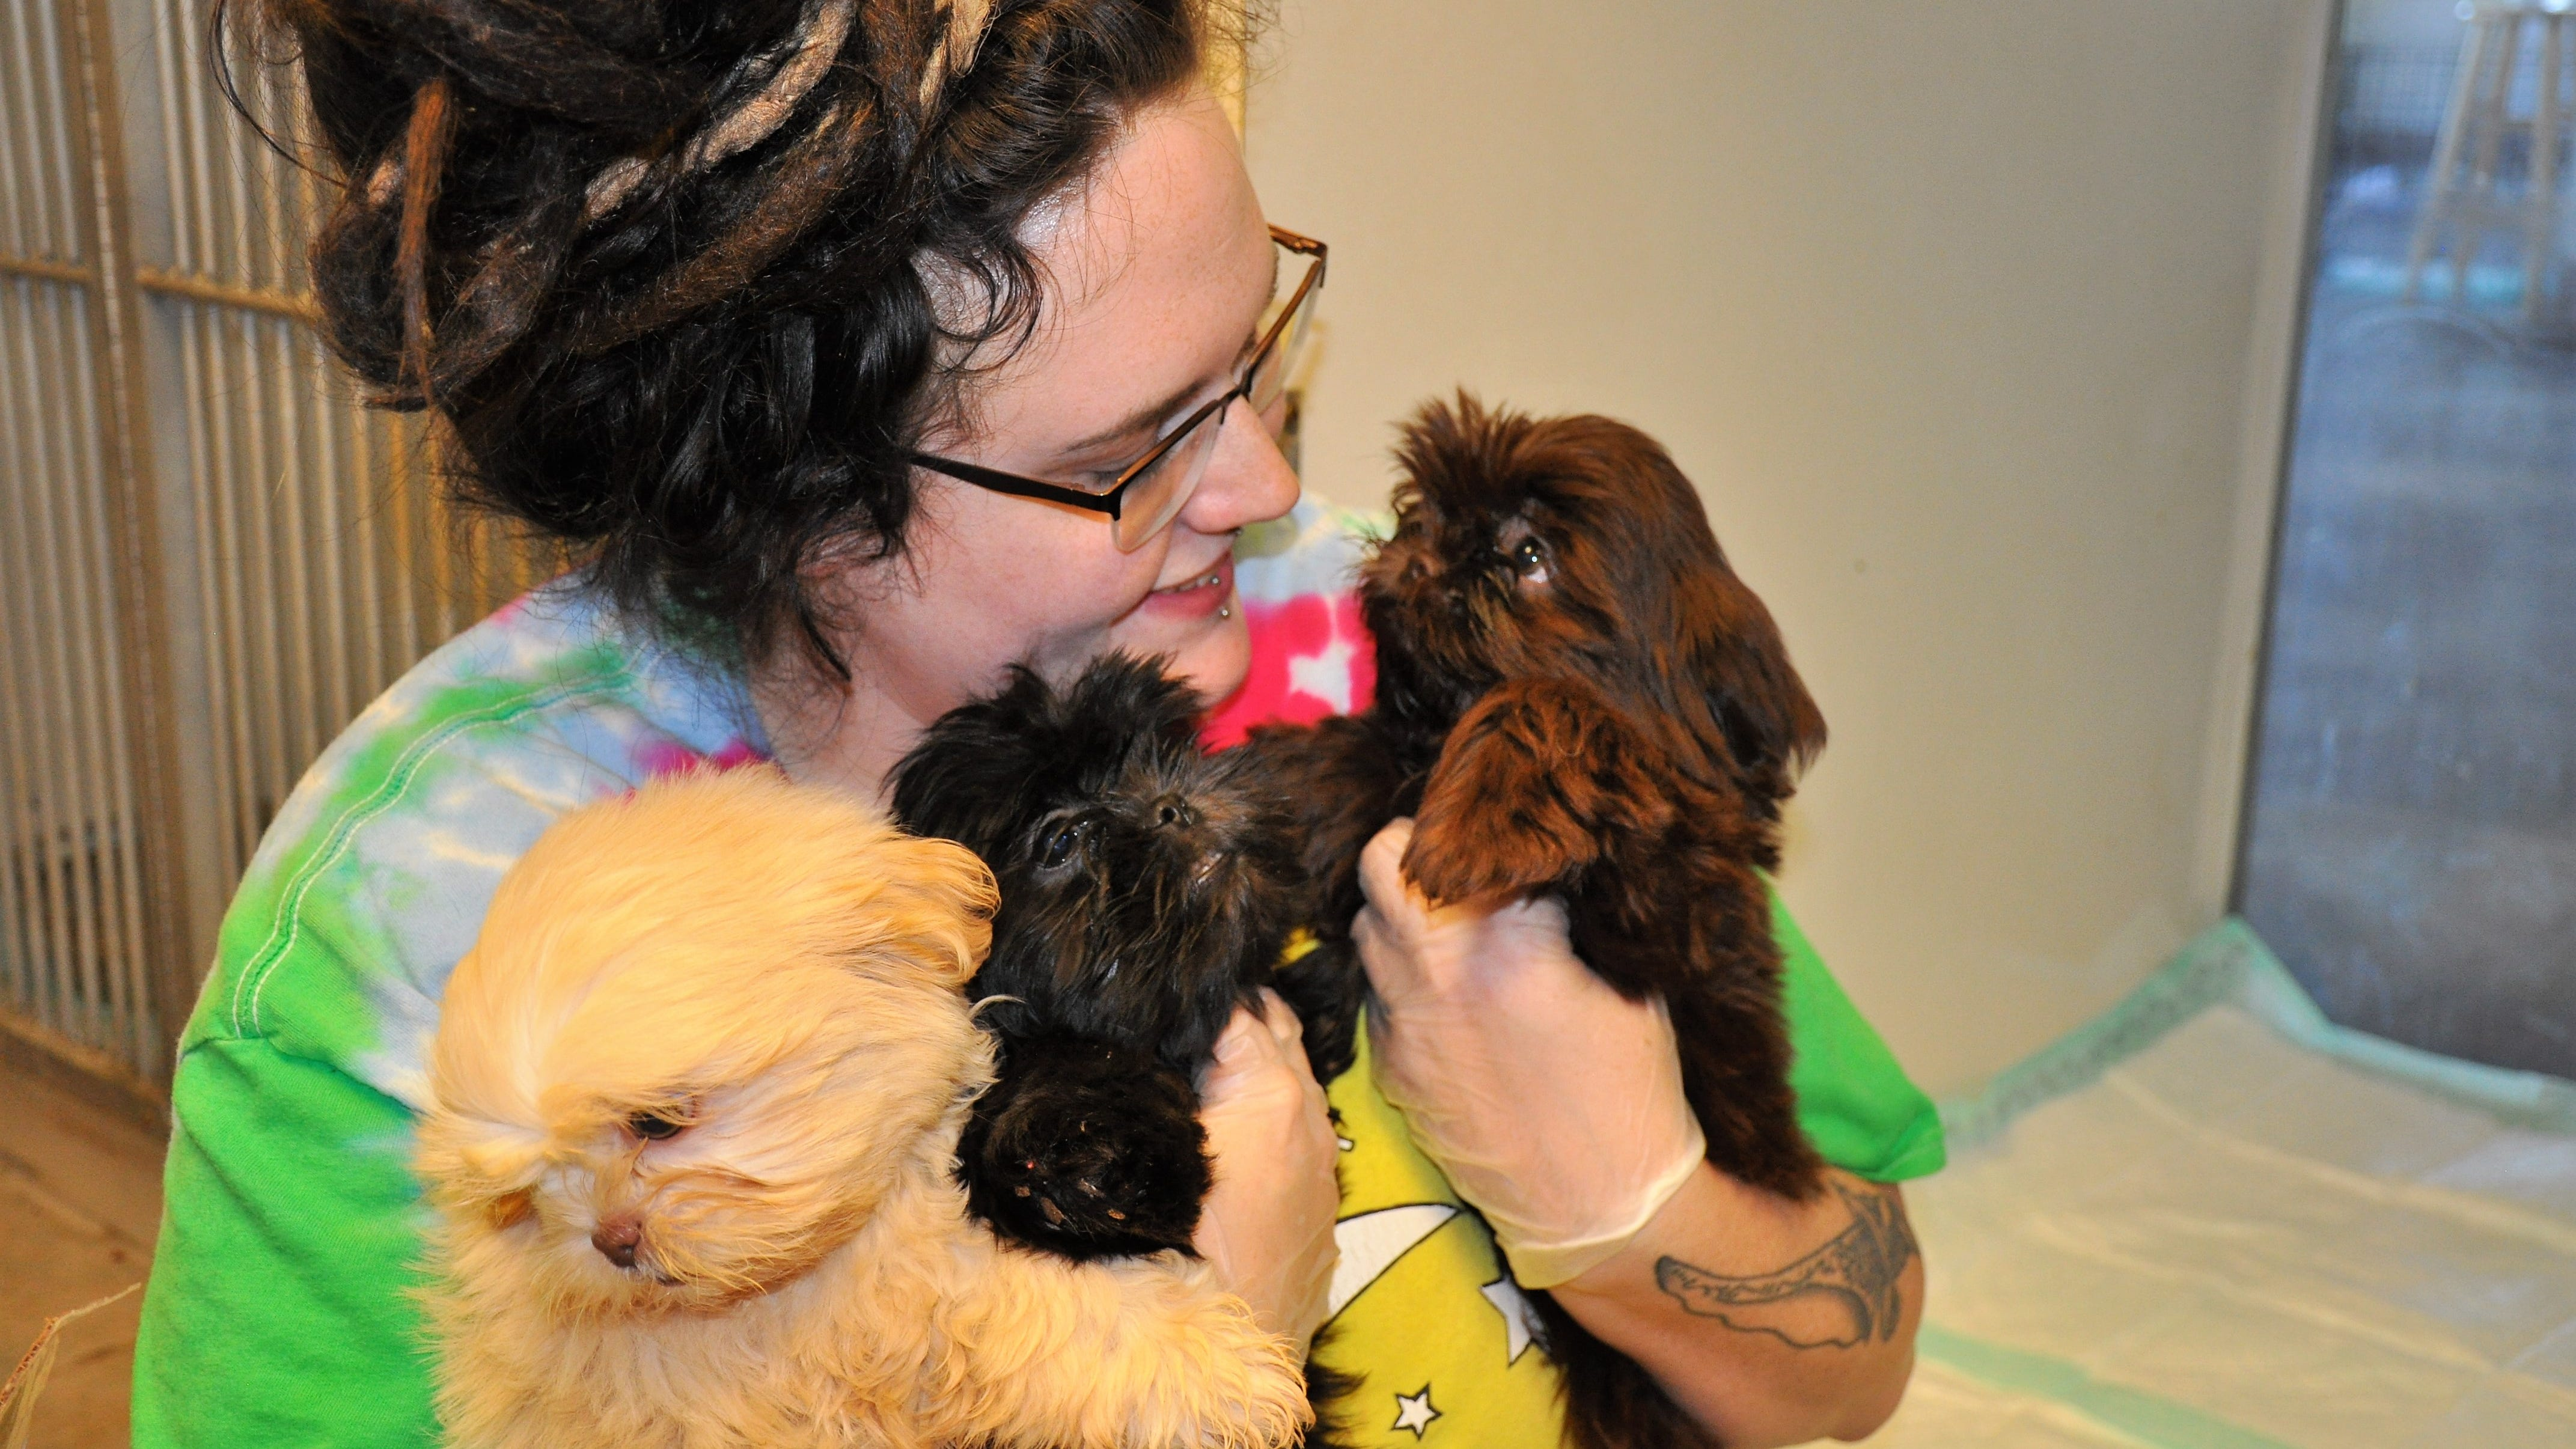 Hope Gallaway with Rescue the Animals, SPCA in Abilene, Texas hold three Shih Tzu puppies after cleaning their kennel space on Monday, Nov. 19, 2018. The pups were among the 78 dogs rescued from a filthy house in Callahan County.